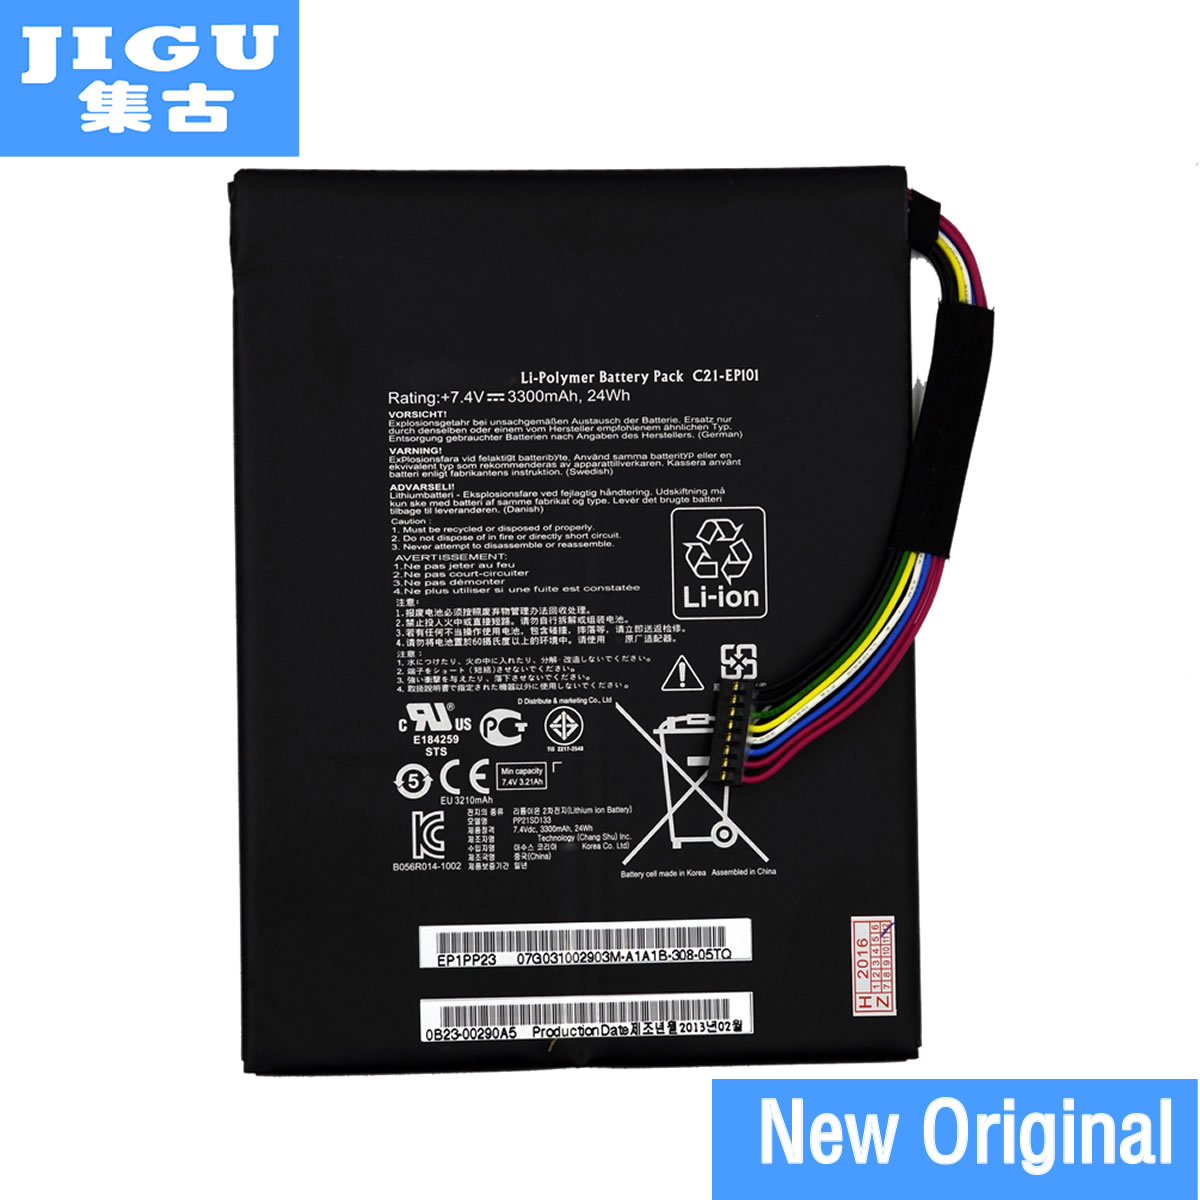 JIGU Original C21-EP101 tablet Battery for ASUS Eee Pad Transformer TF101 TR101 7.4V 3300mAh usb 2 0 otg adapter for asus eee pad transformer tf101 tf201 white